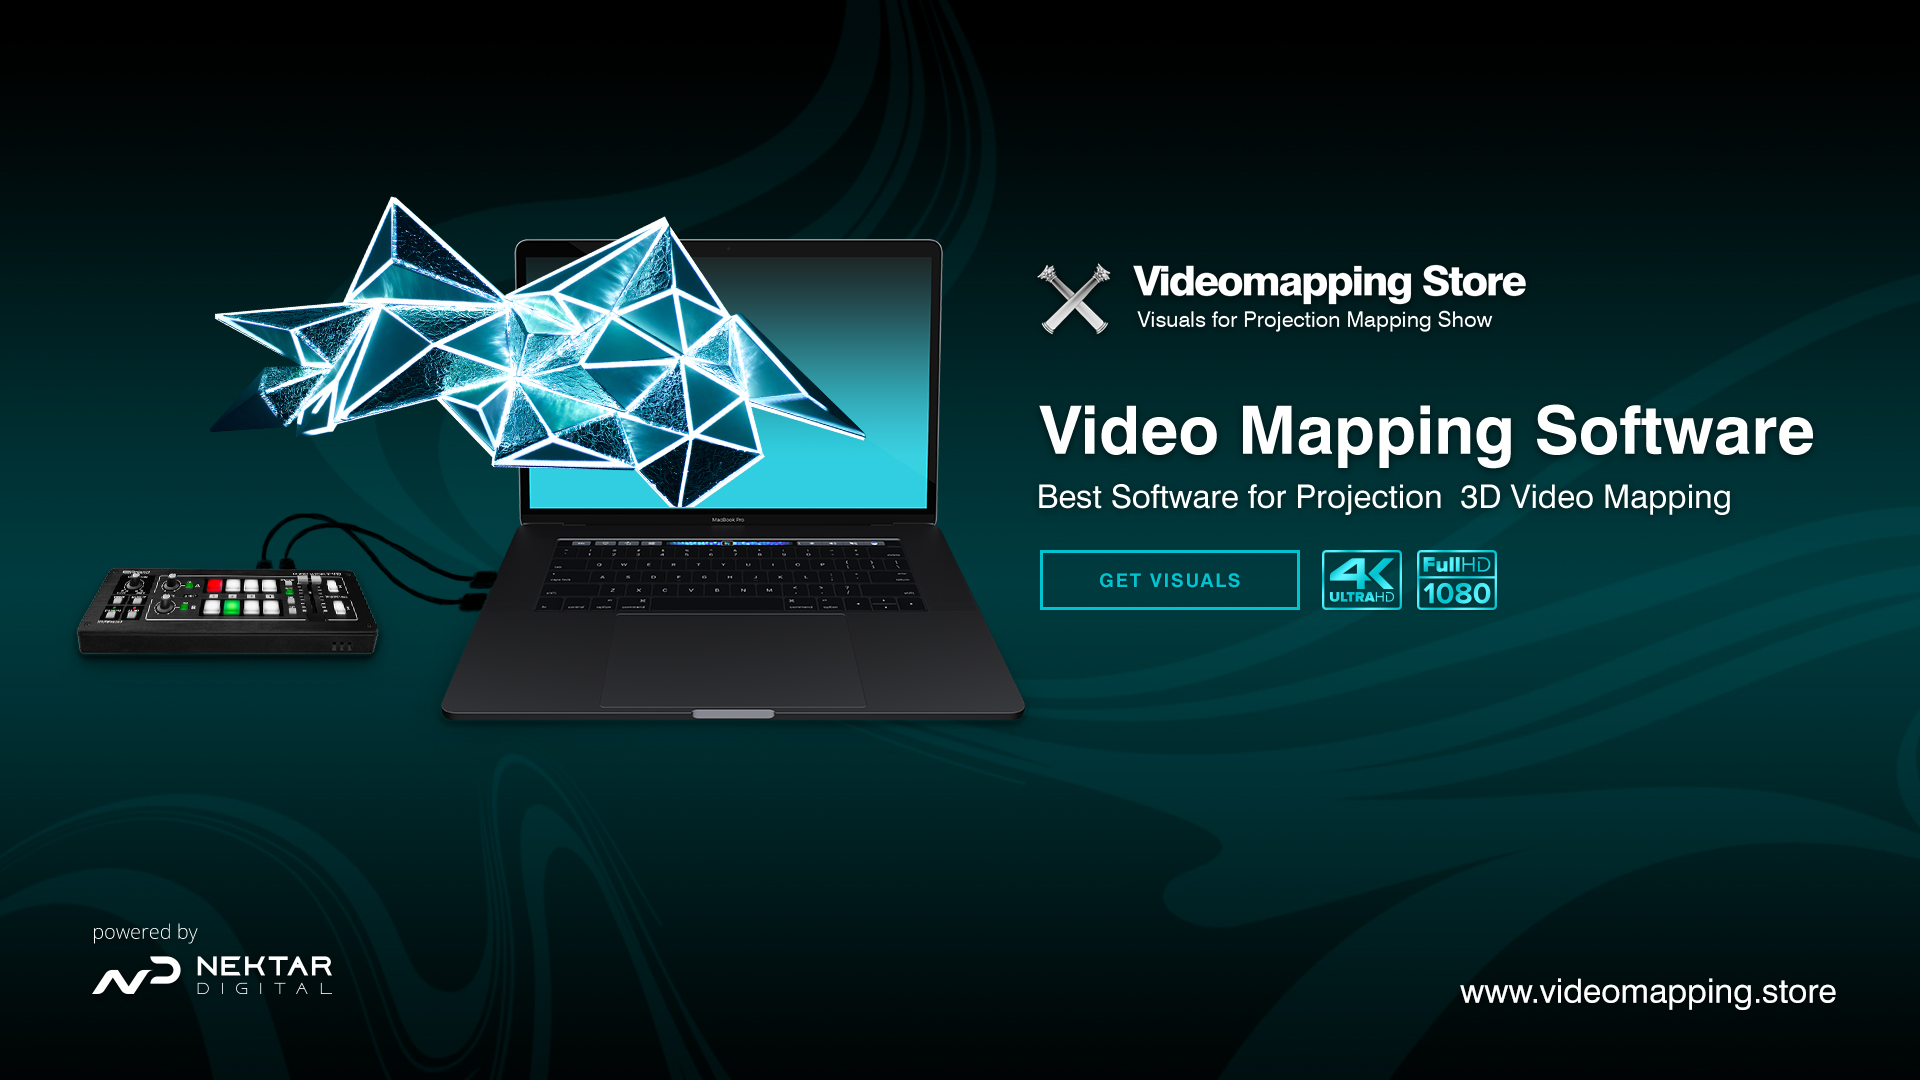 Video Mapping Software Projection D Mapping Software Video - 3d mapping software